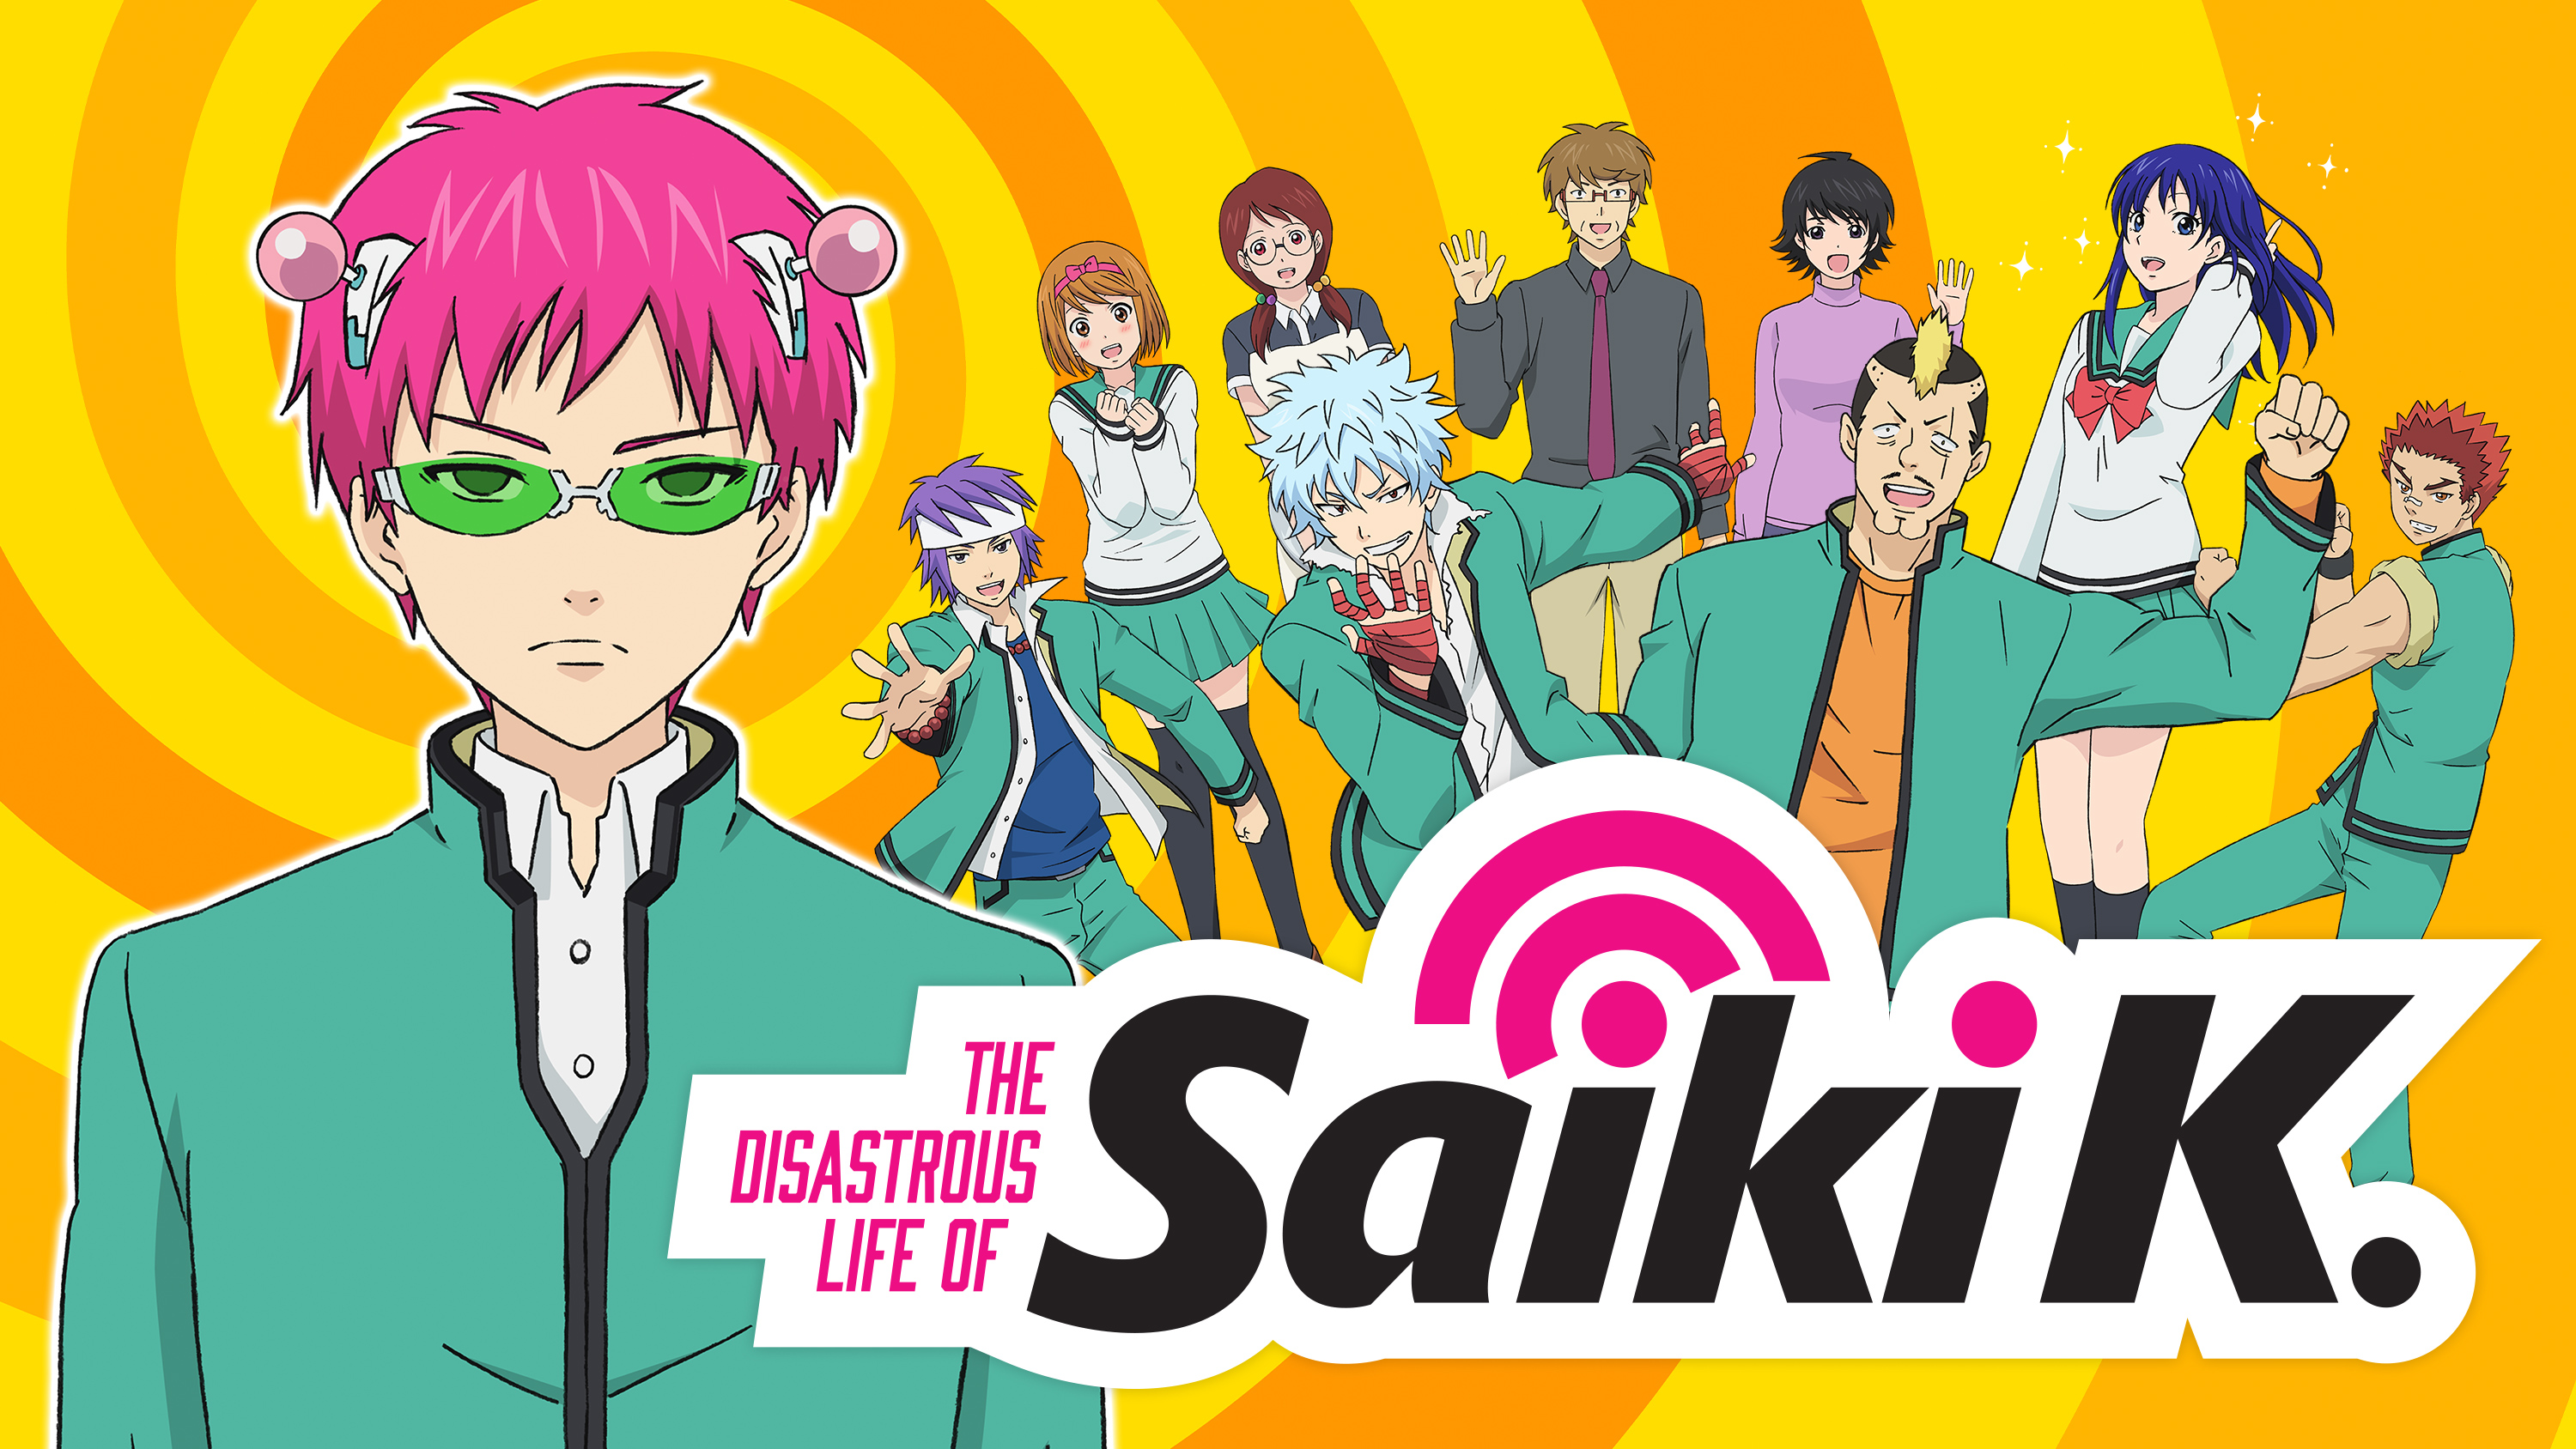 The disastrous life of saiki k season 2 shiggy jr and psychic lover provide new op and ed - The disastrous life of saiki k season 2 episode 1 ...